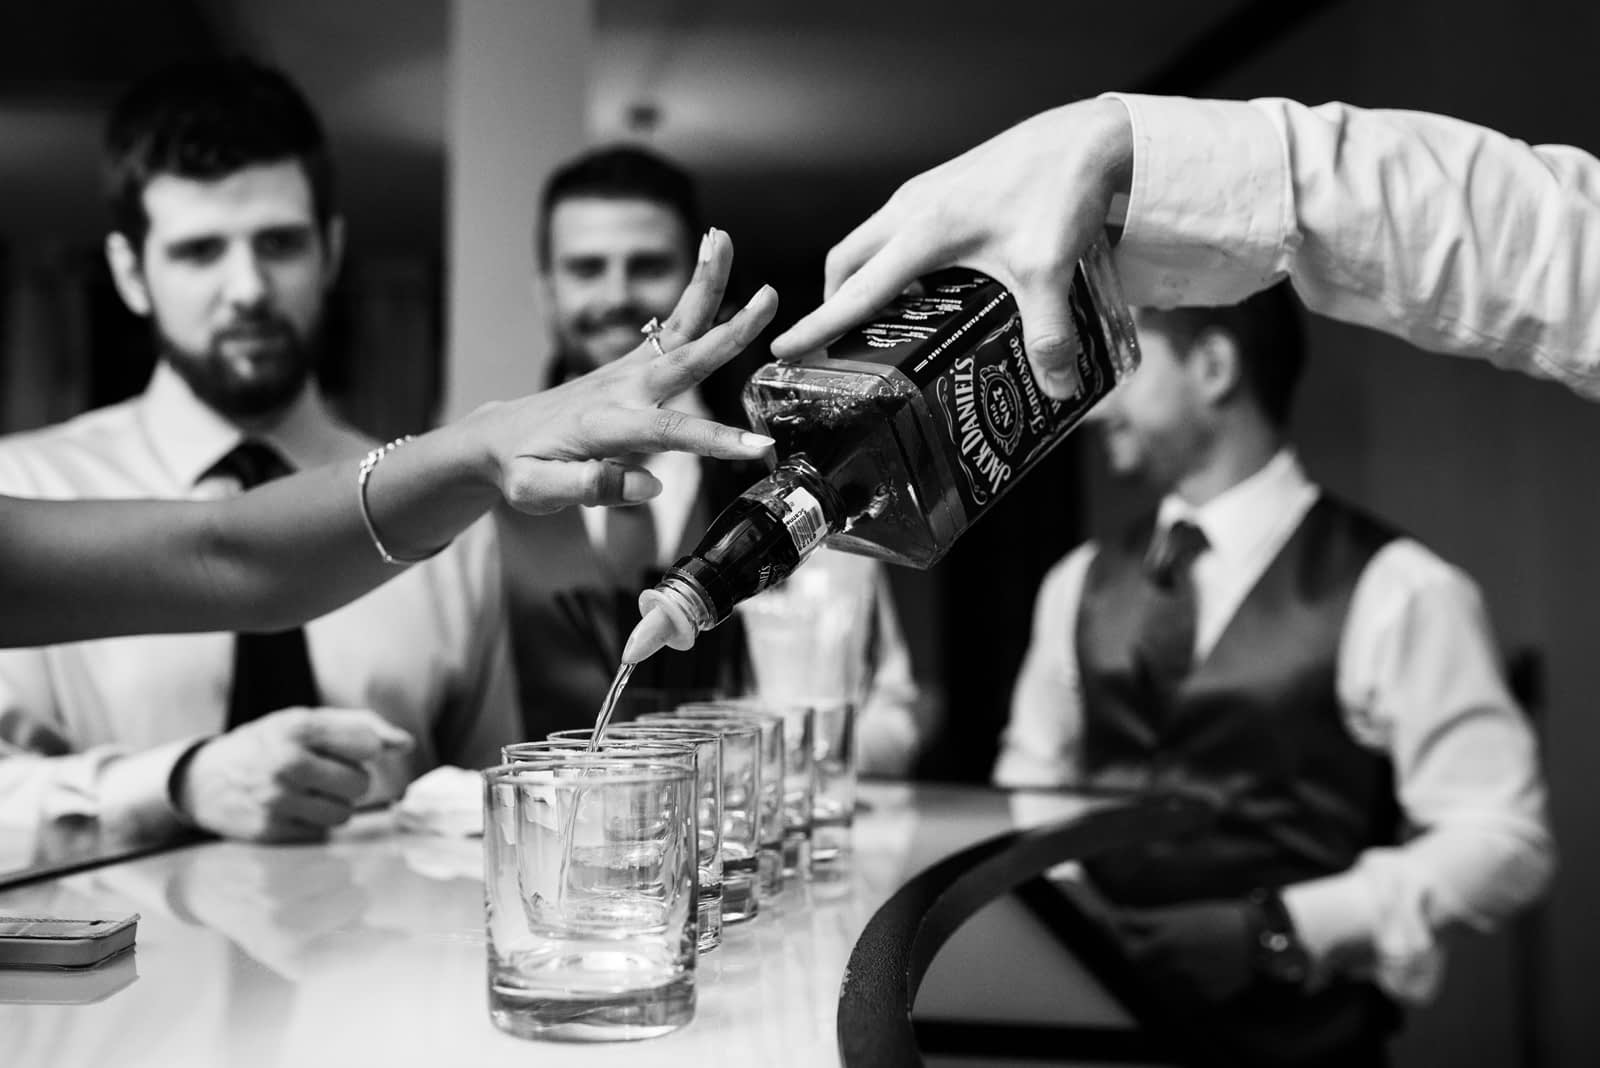 Wedding guest pushing whiskey bottle down to get more booze